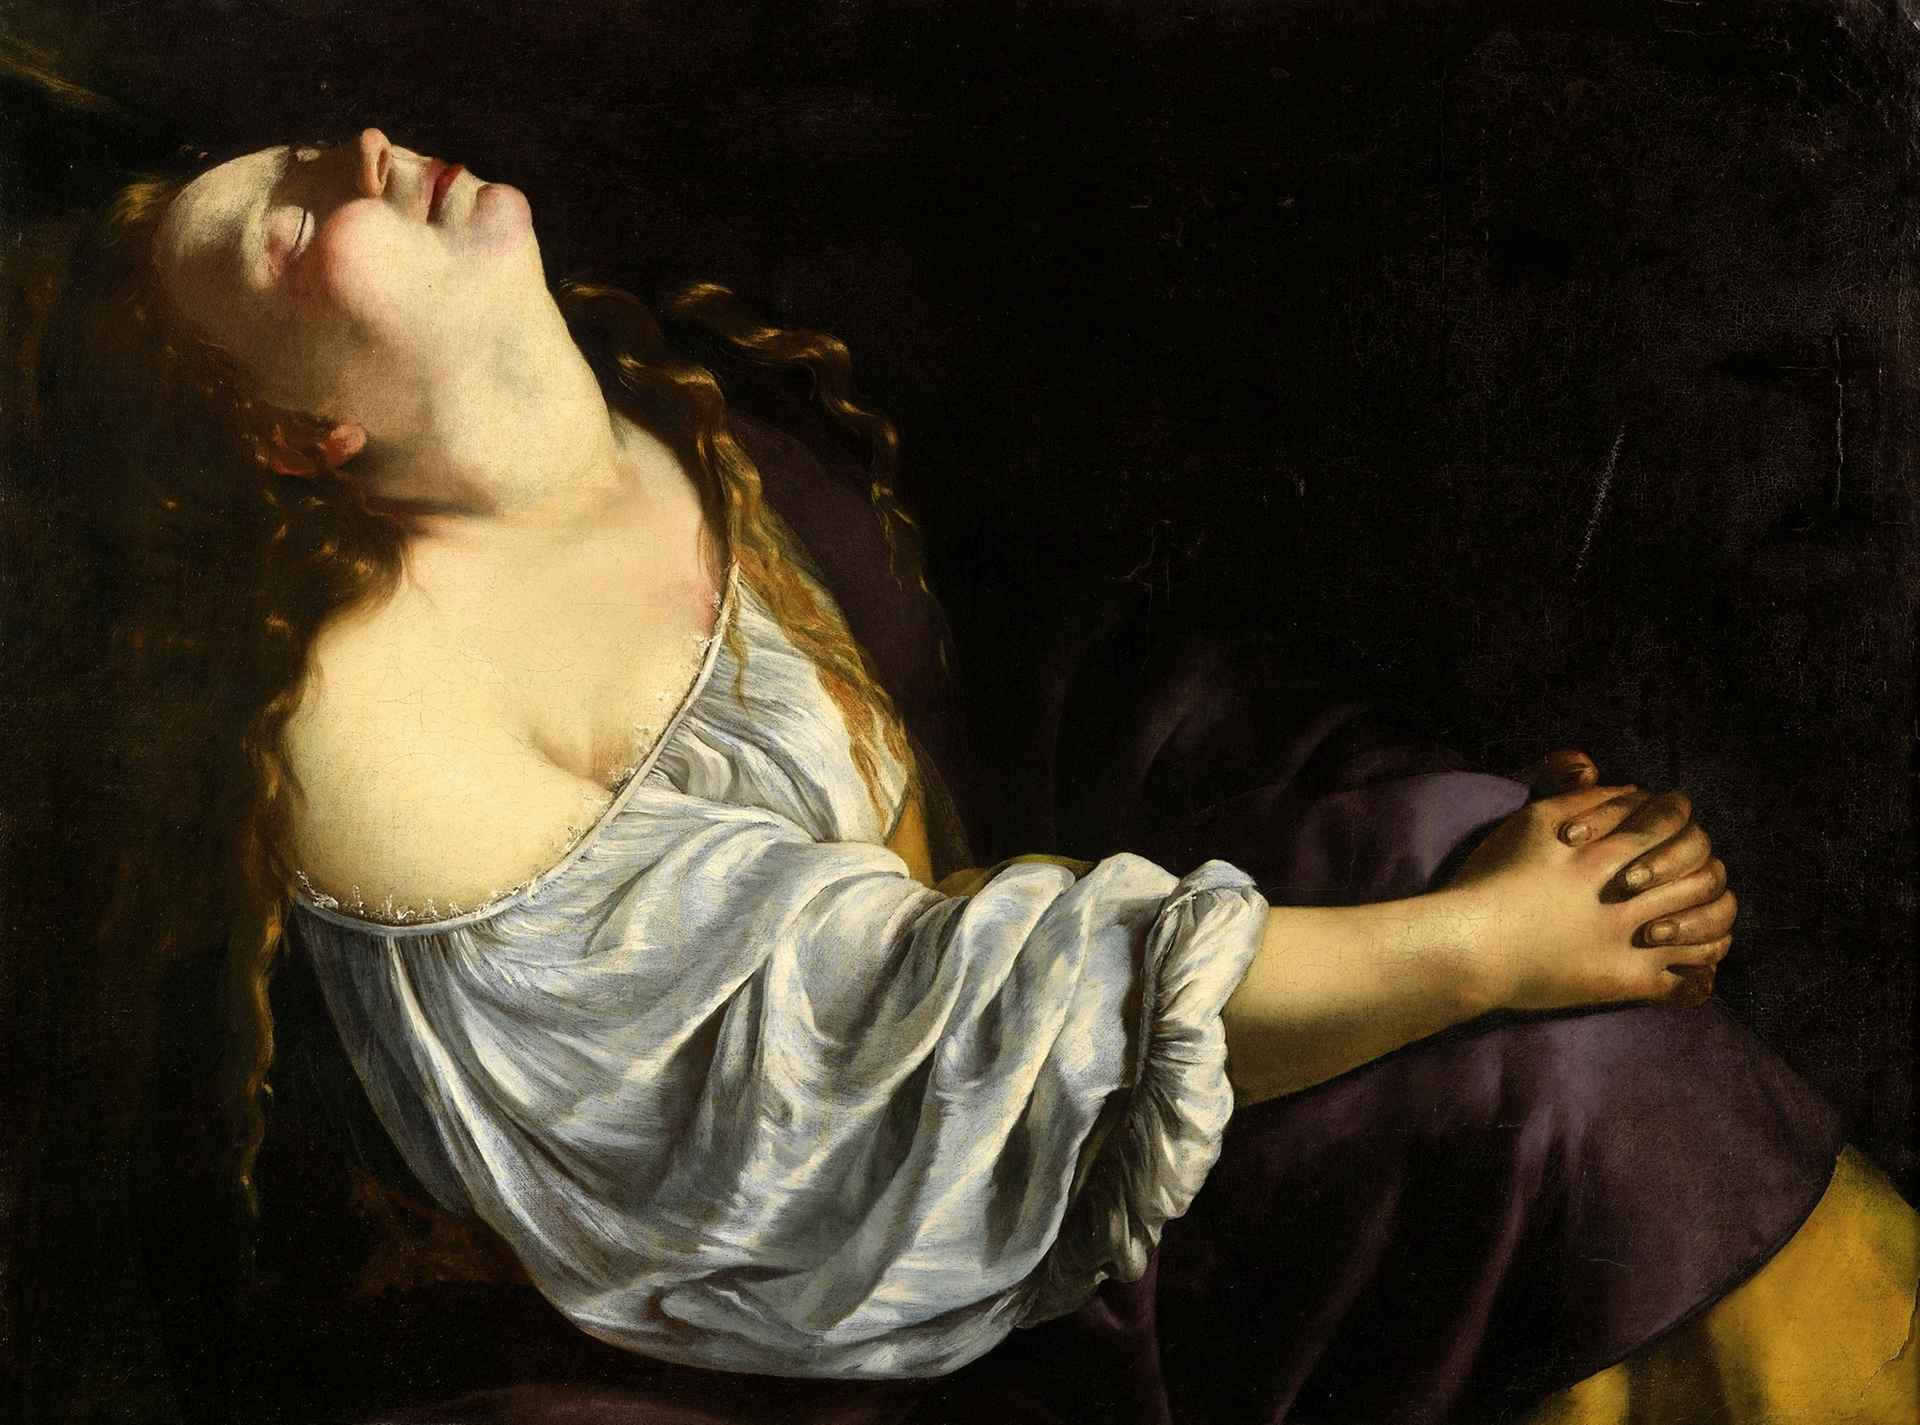 British singer and songwriter FKA twigs talks about the sensuous portrait of Mary Magdalene by Artemisia Gentileschi